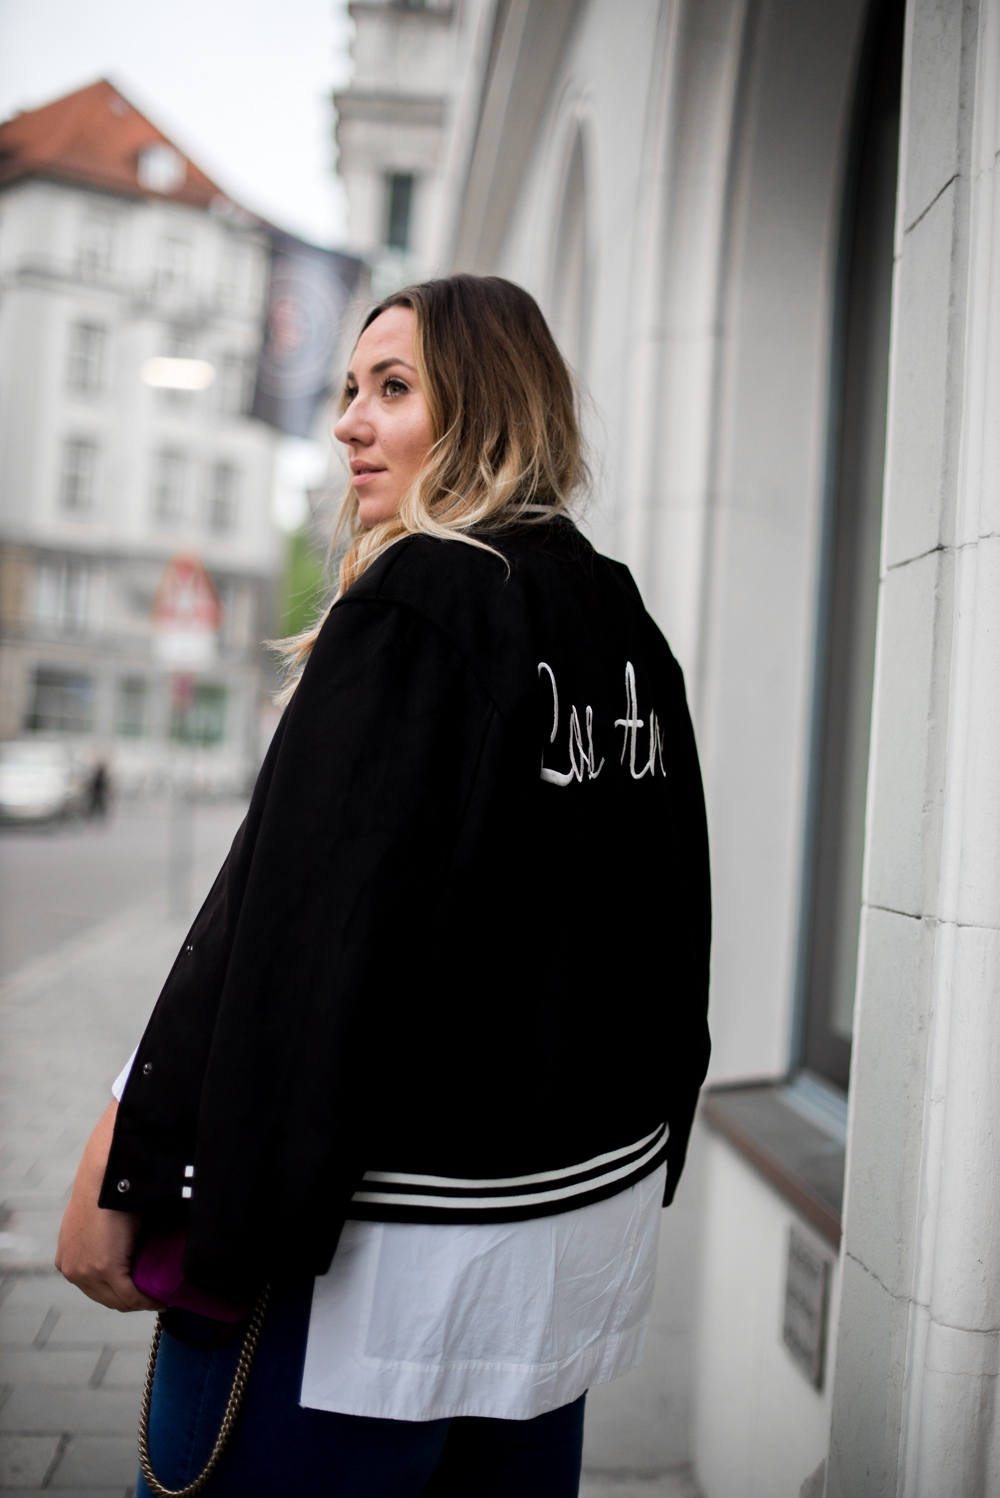 Gucci_The Skinny and the Curvy One_Ms wunderbar_Plus Size Blogger_curve blog_Fashionblog Deutschland_Plus Size Fashion Deutschland_College Jacke_Fringe Jeans (3 von 15)